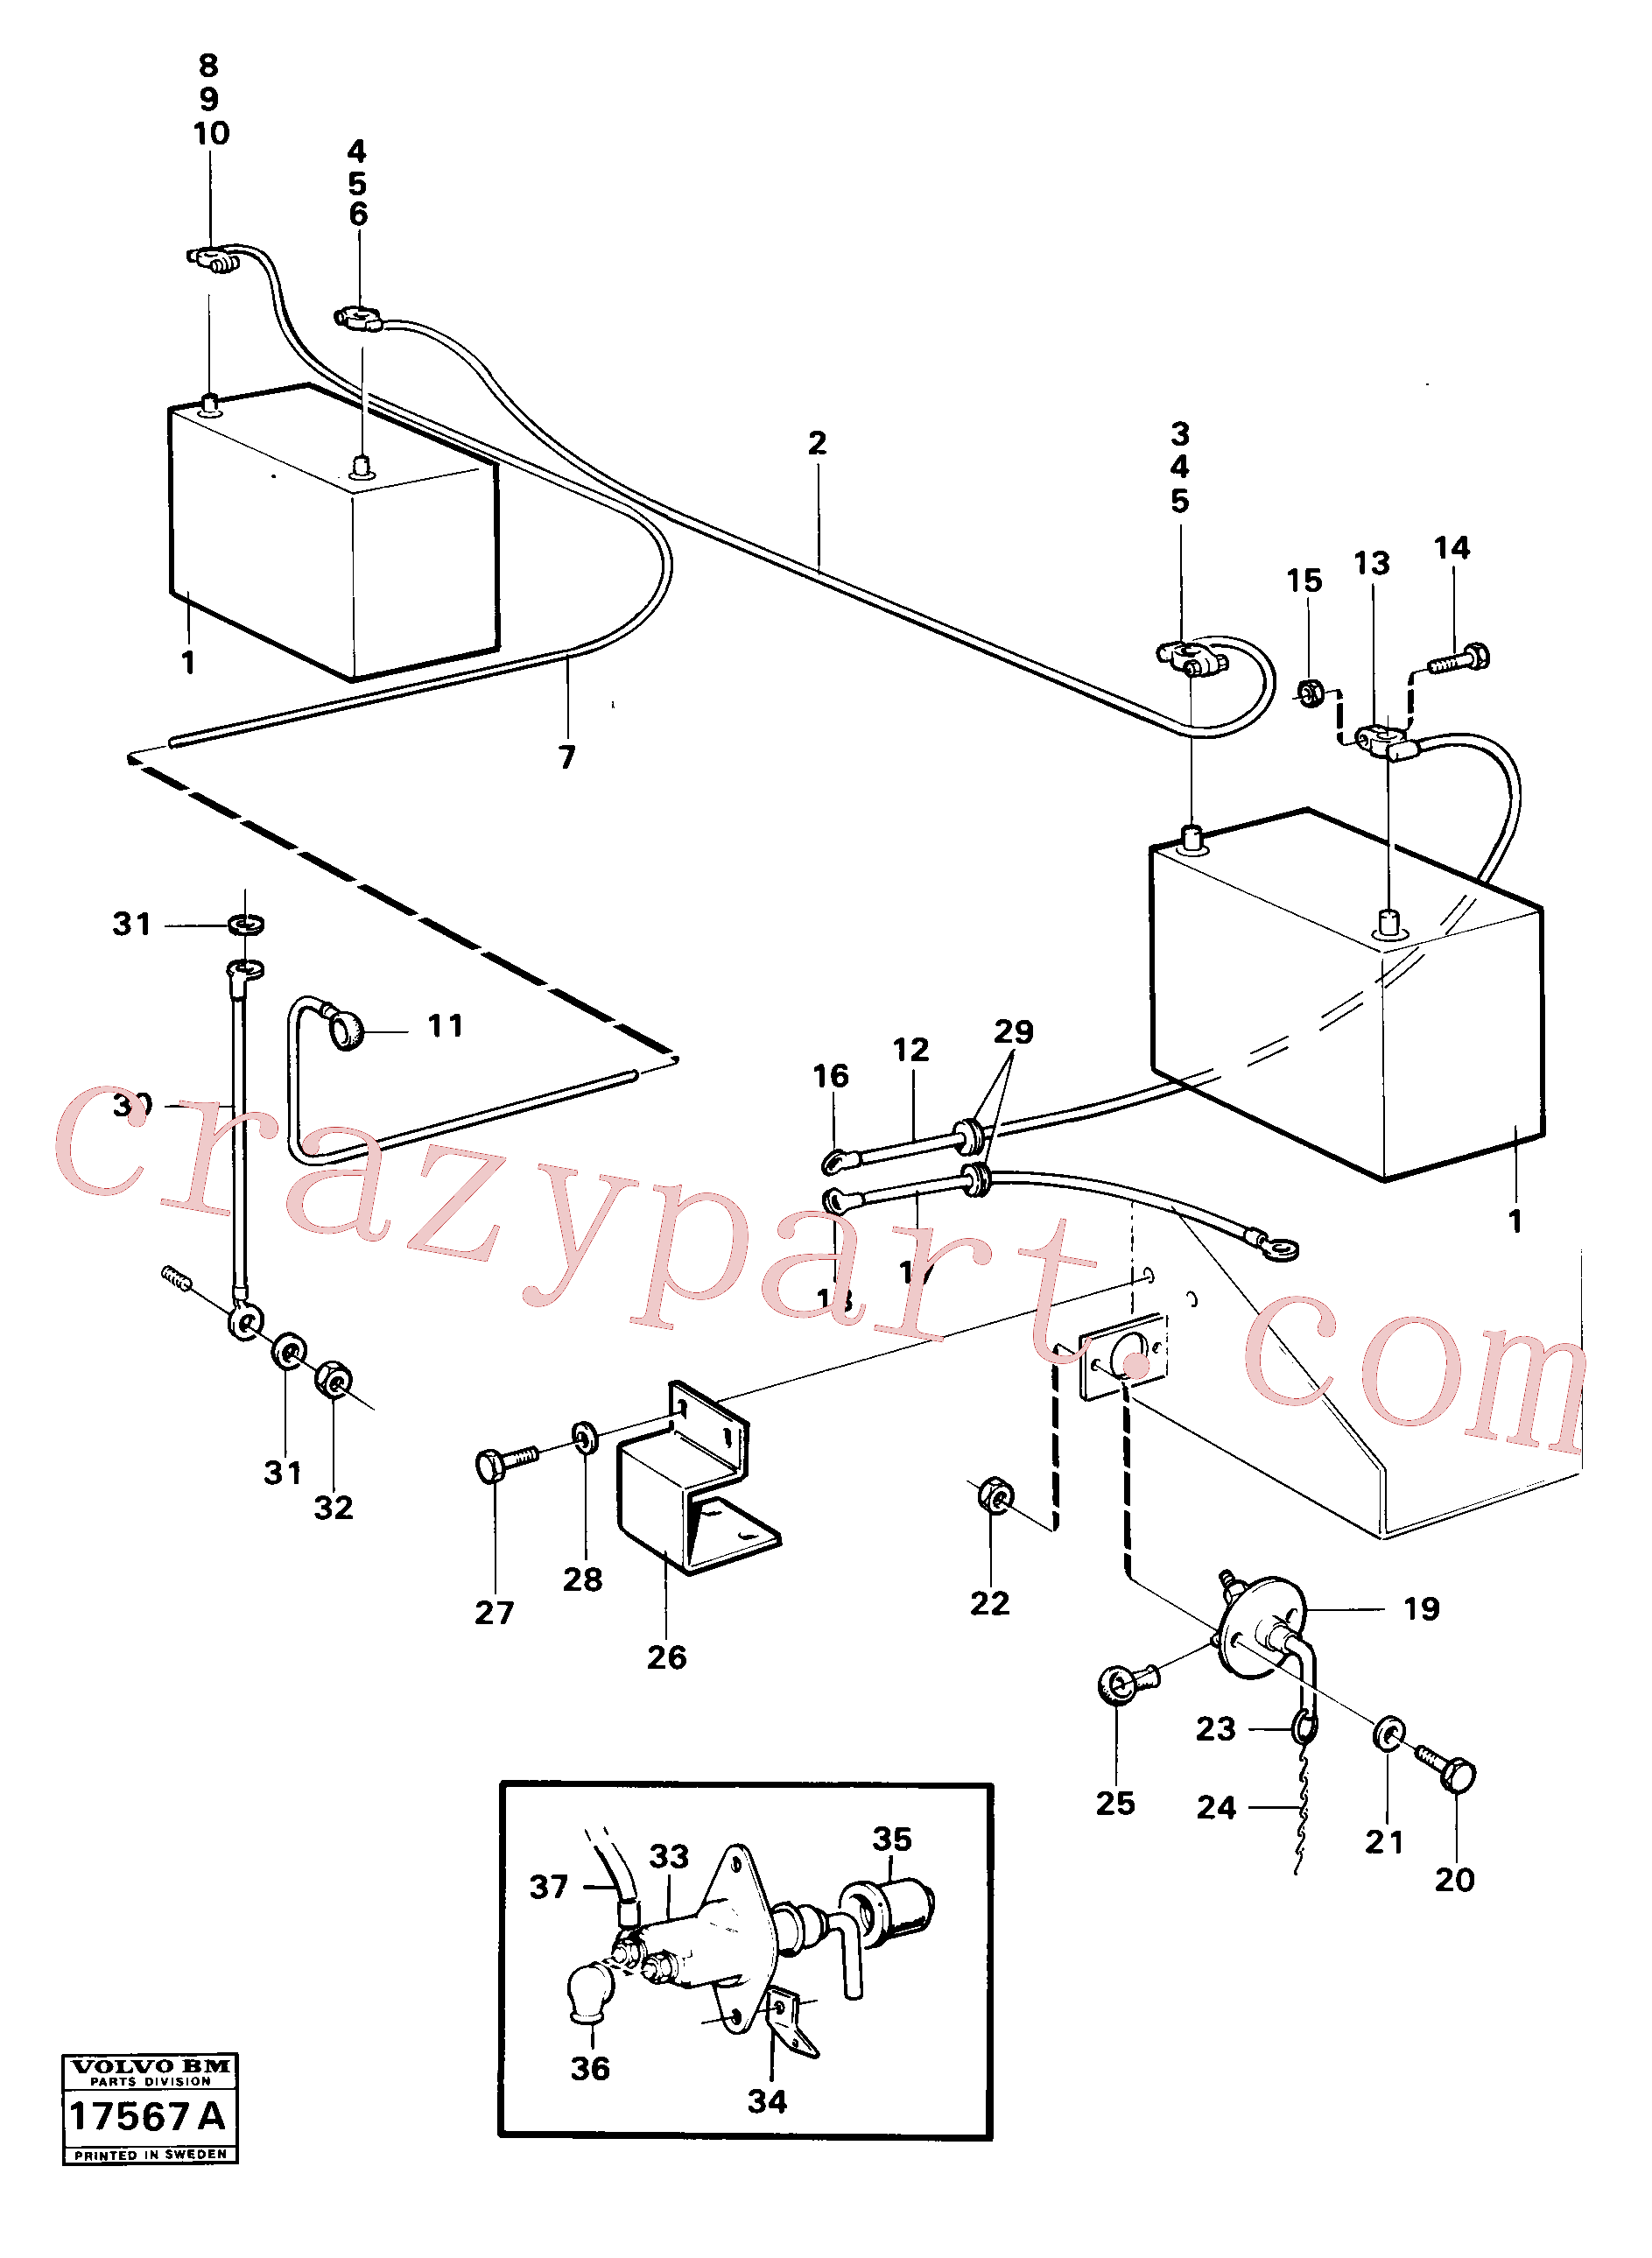 VOE971071 for Volvo Battery with assembling details(17567A assembly)